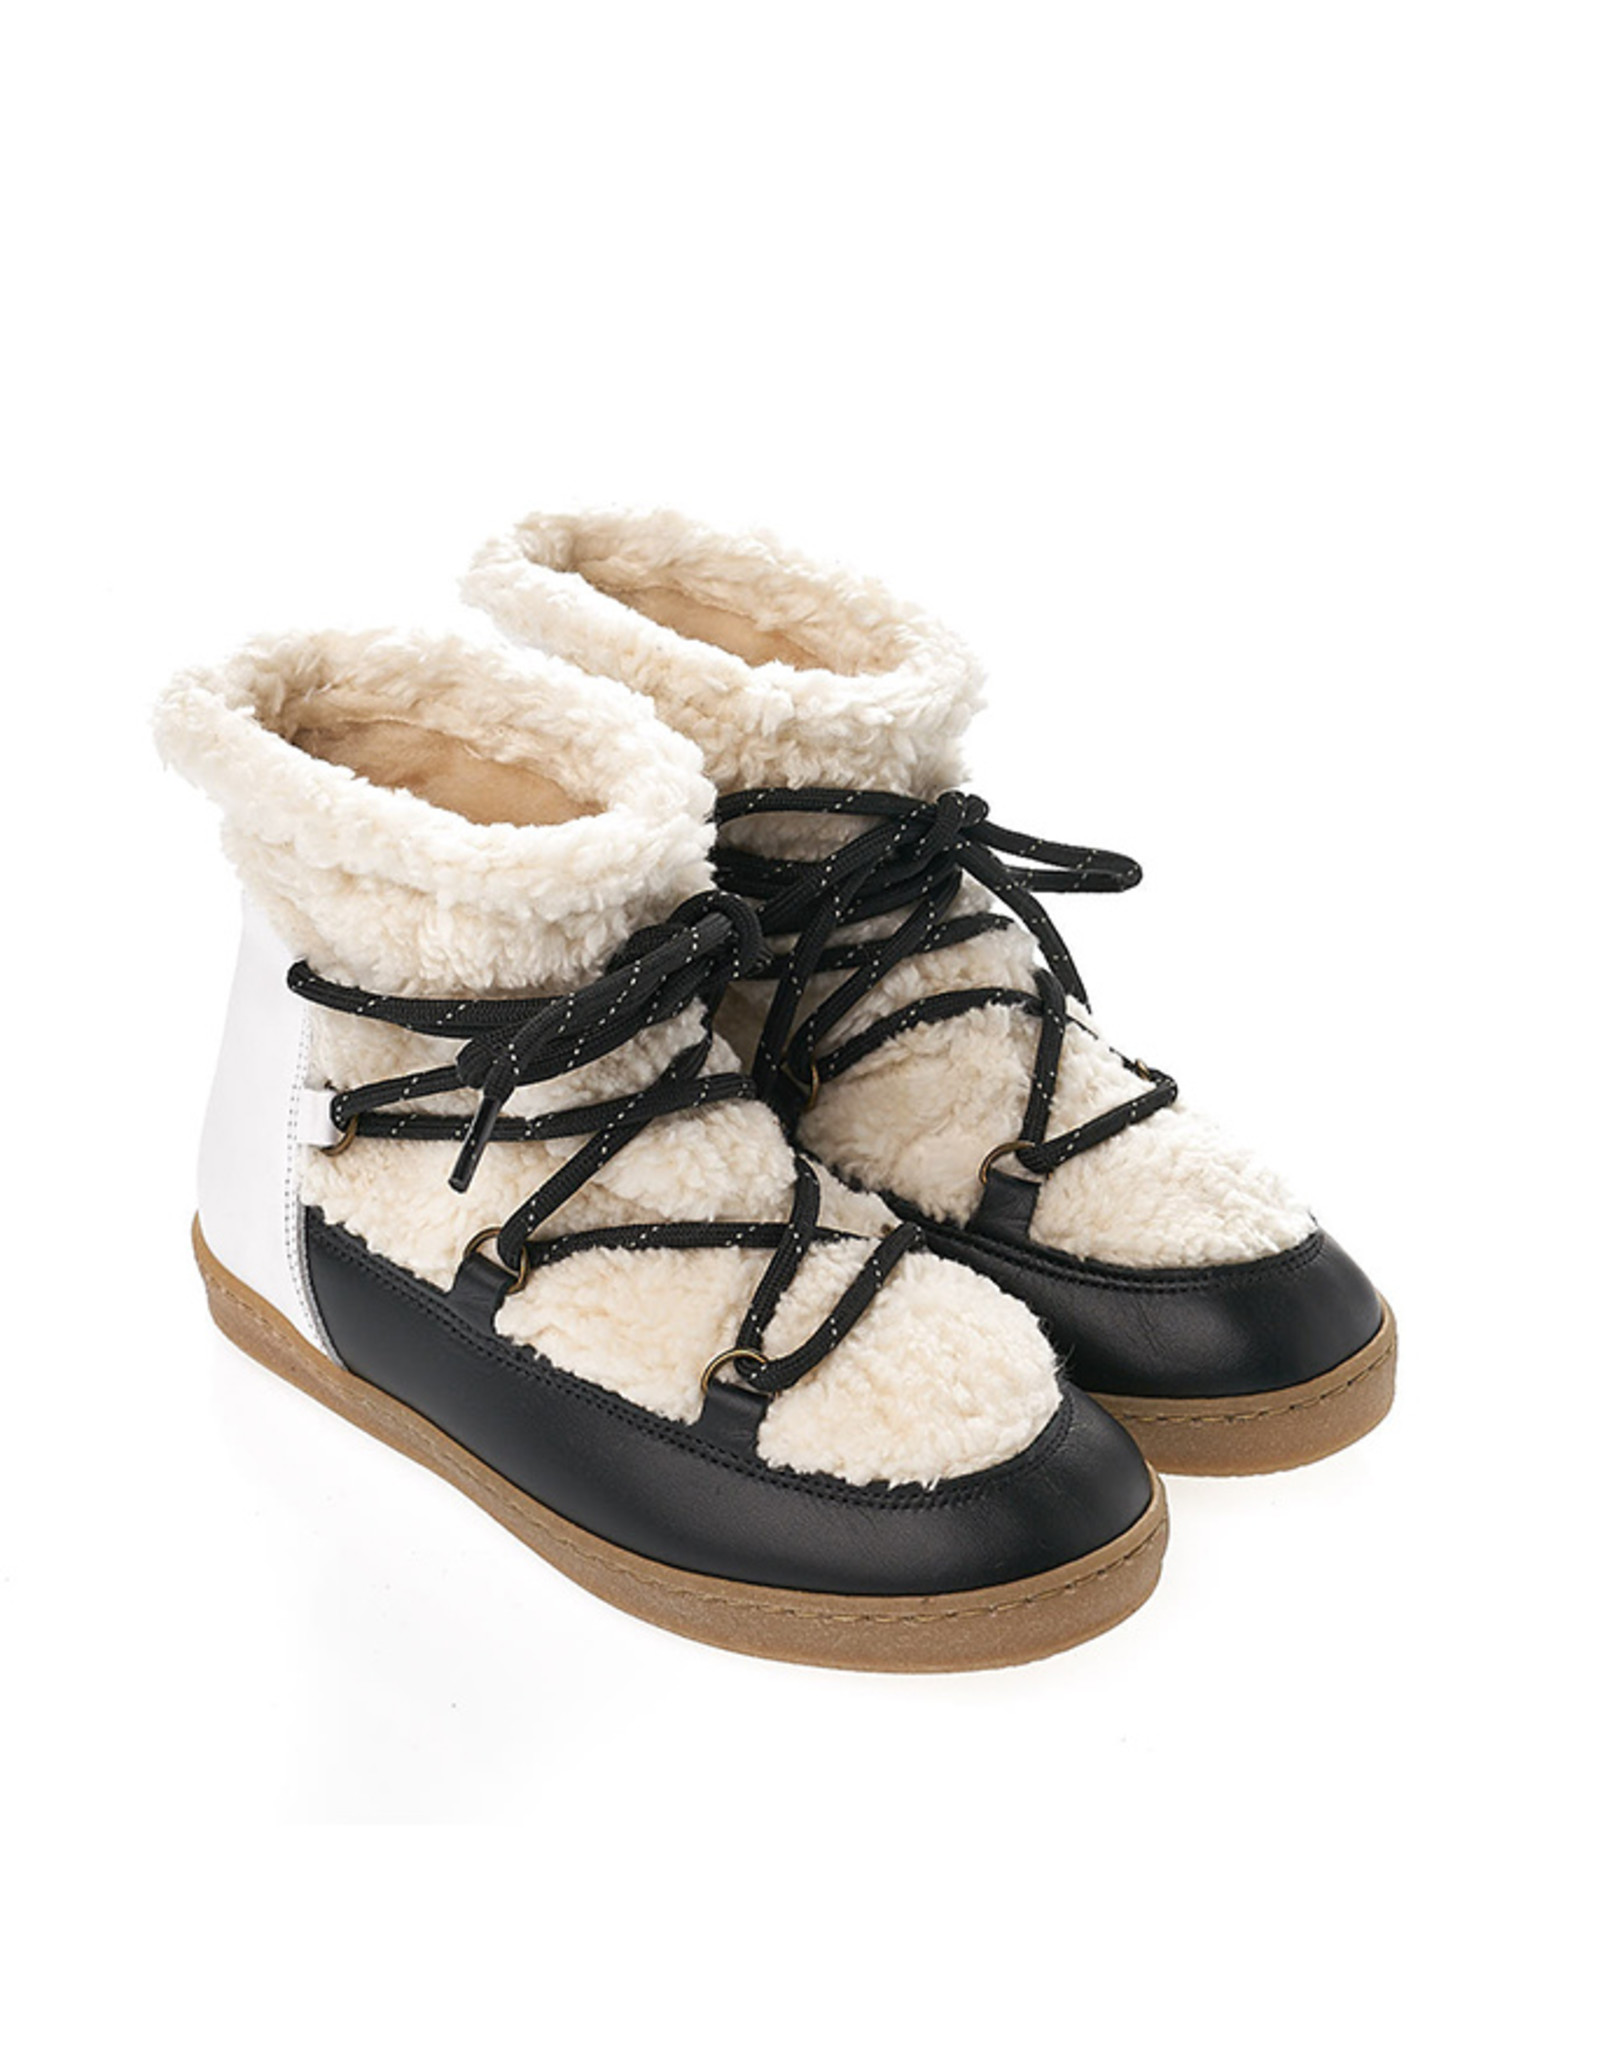 LMDI Collection Skymo Boots Black White